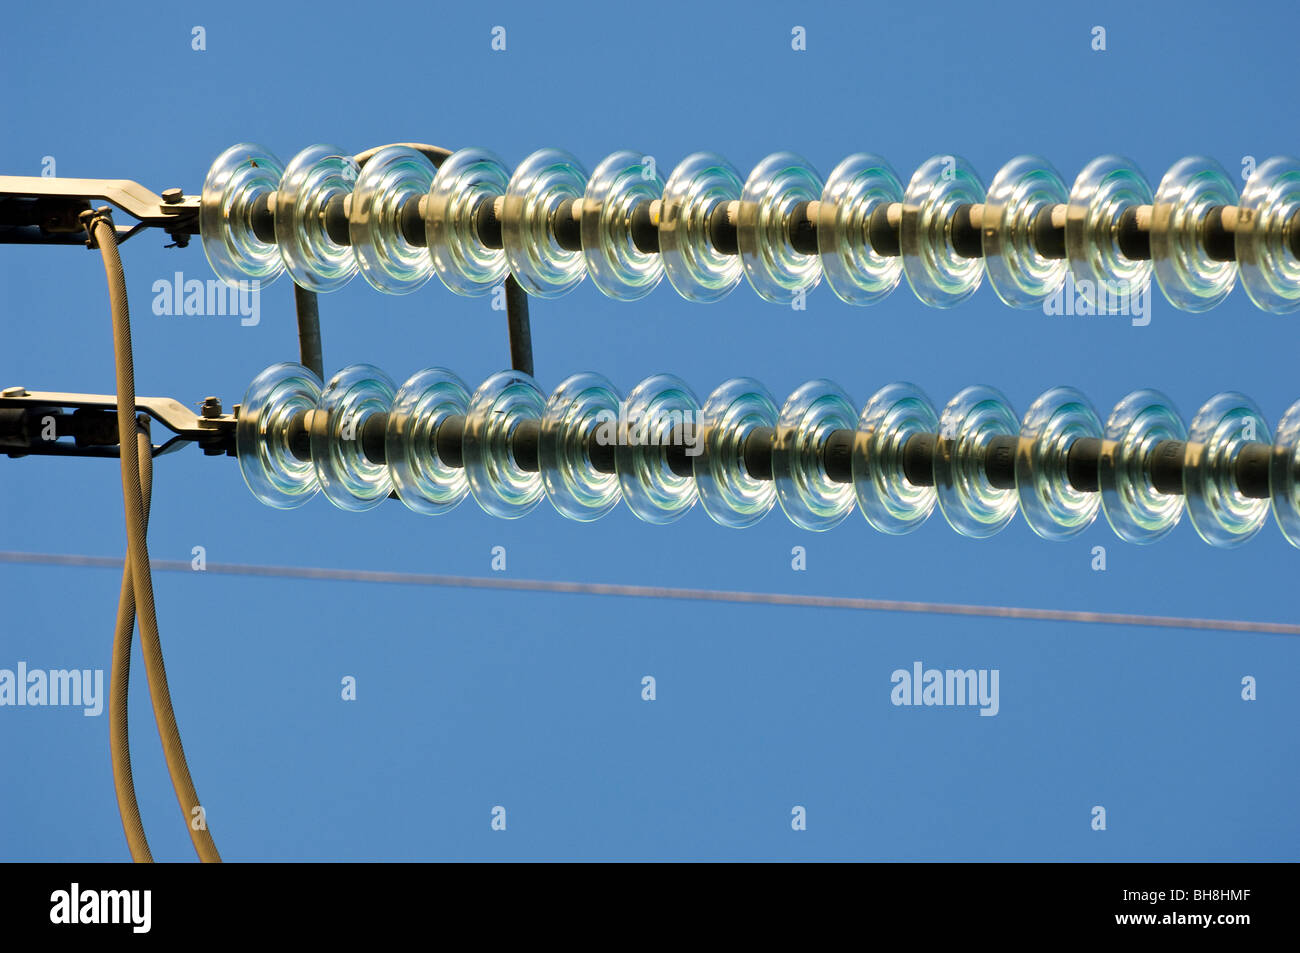 High voltage overhead cables transmission lines operating at 275kV with glass insulators. - Stock Image